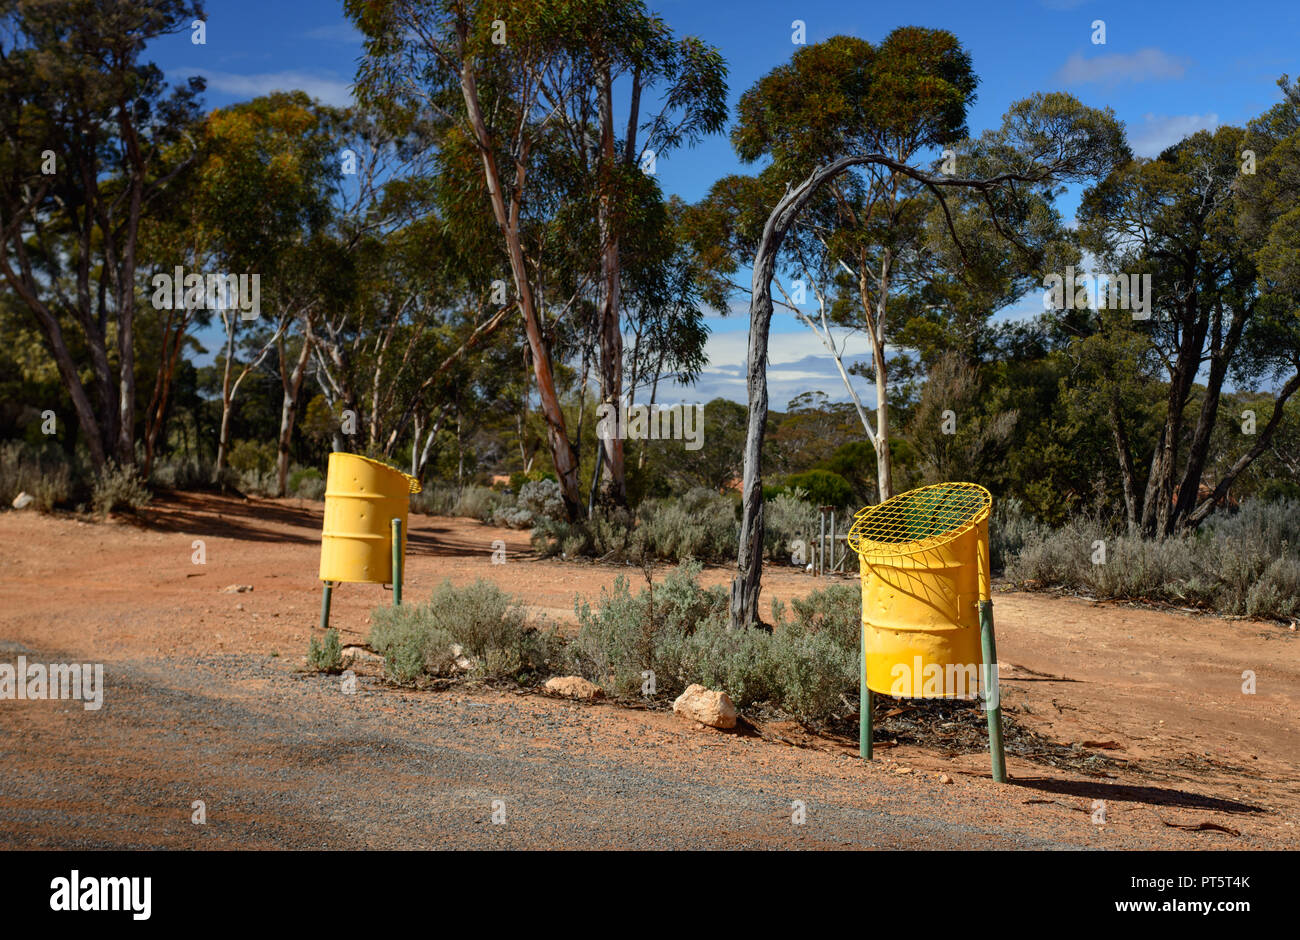 Yelow trash cans at a parking area in an eucalyptus forest, Western Australia, Australia - Stock Image